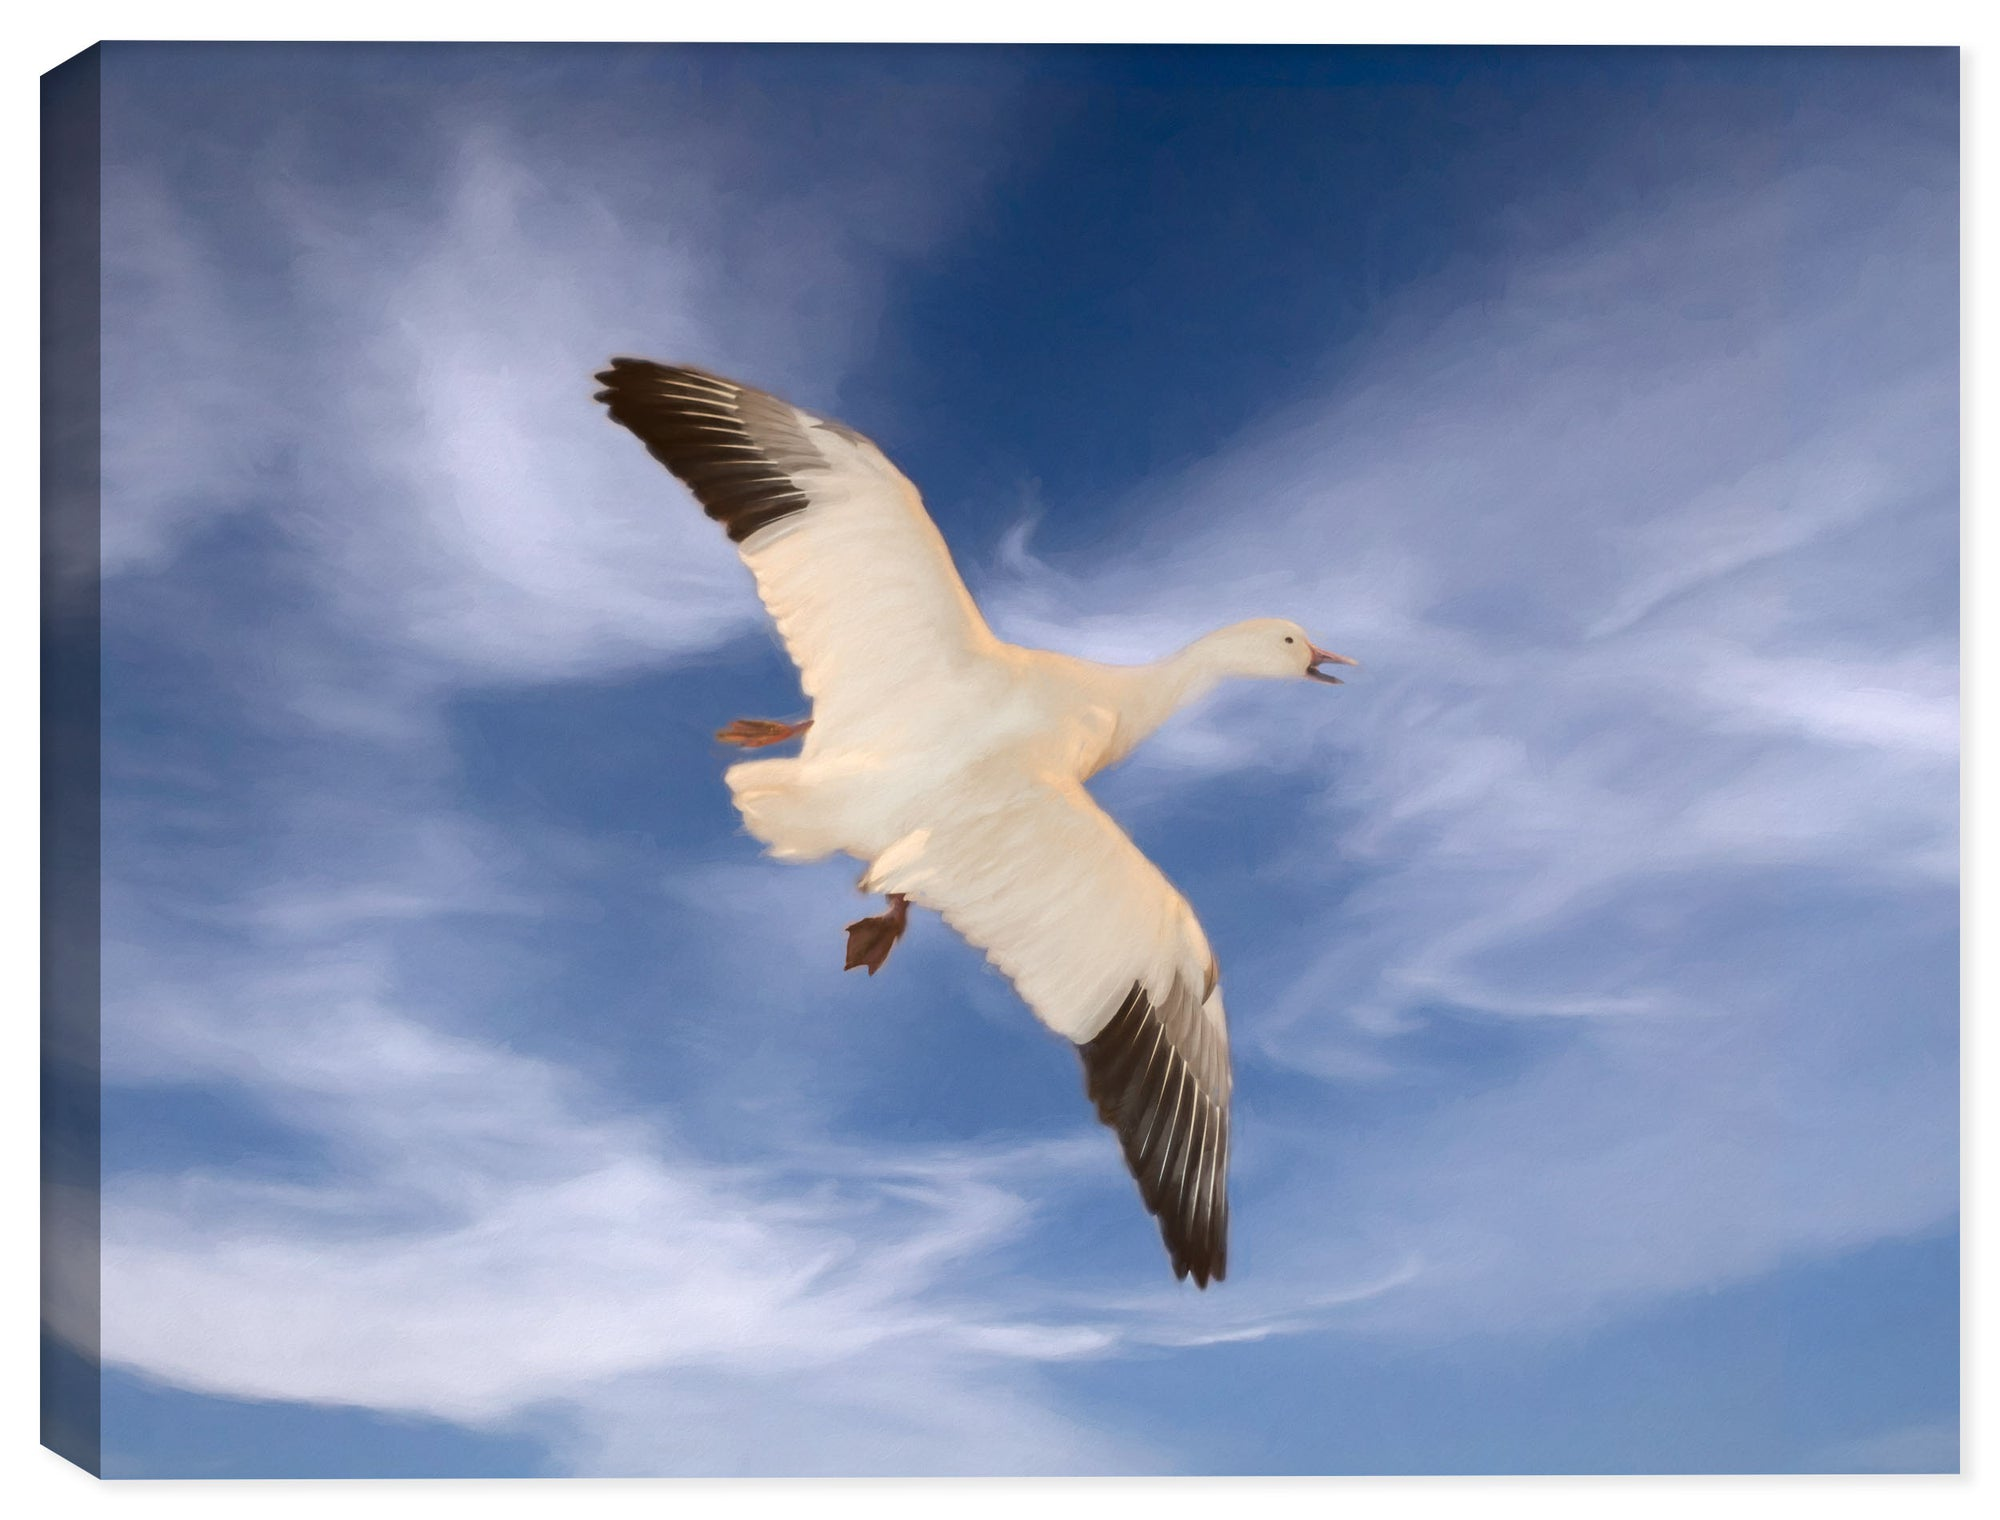 Adult Whit Morph - Bird in Flight on Canvas